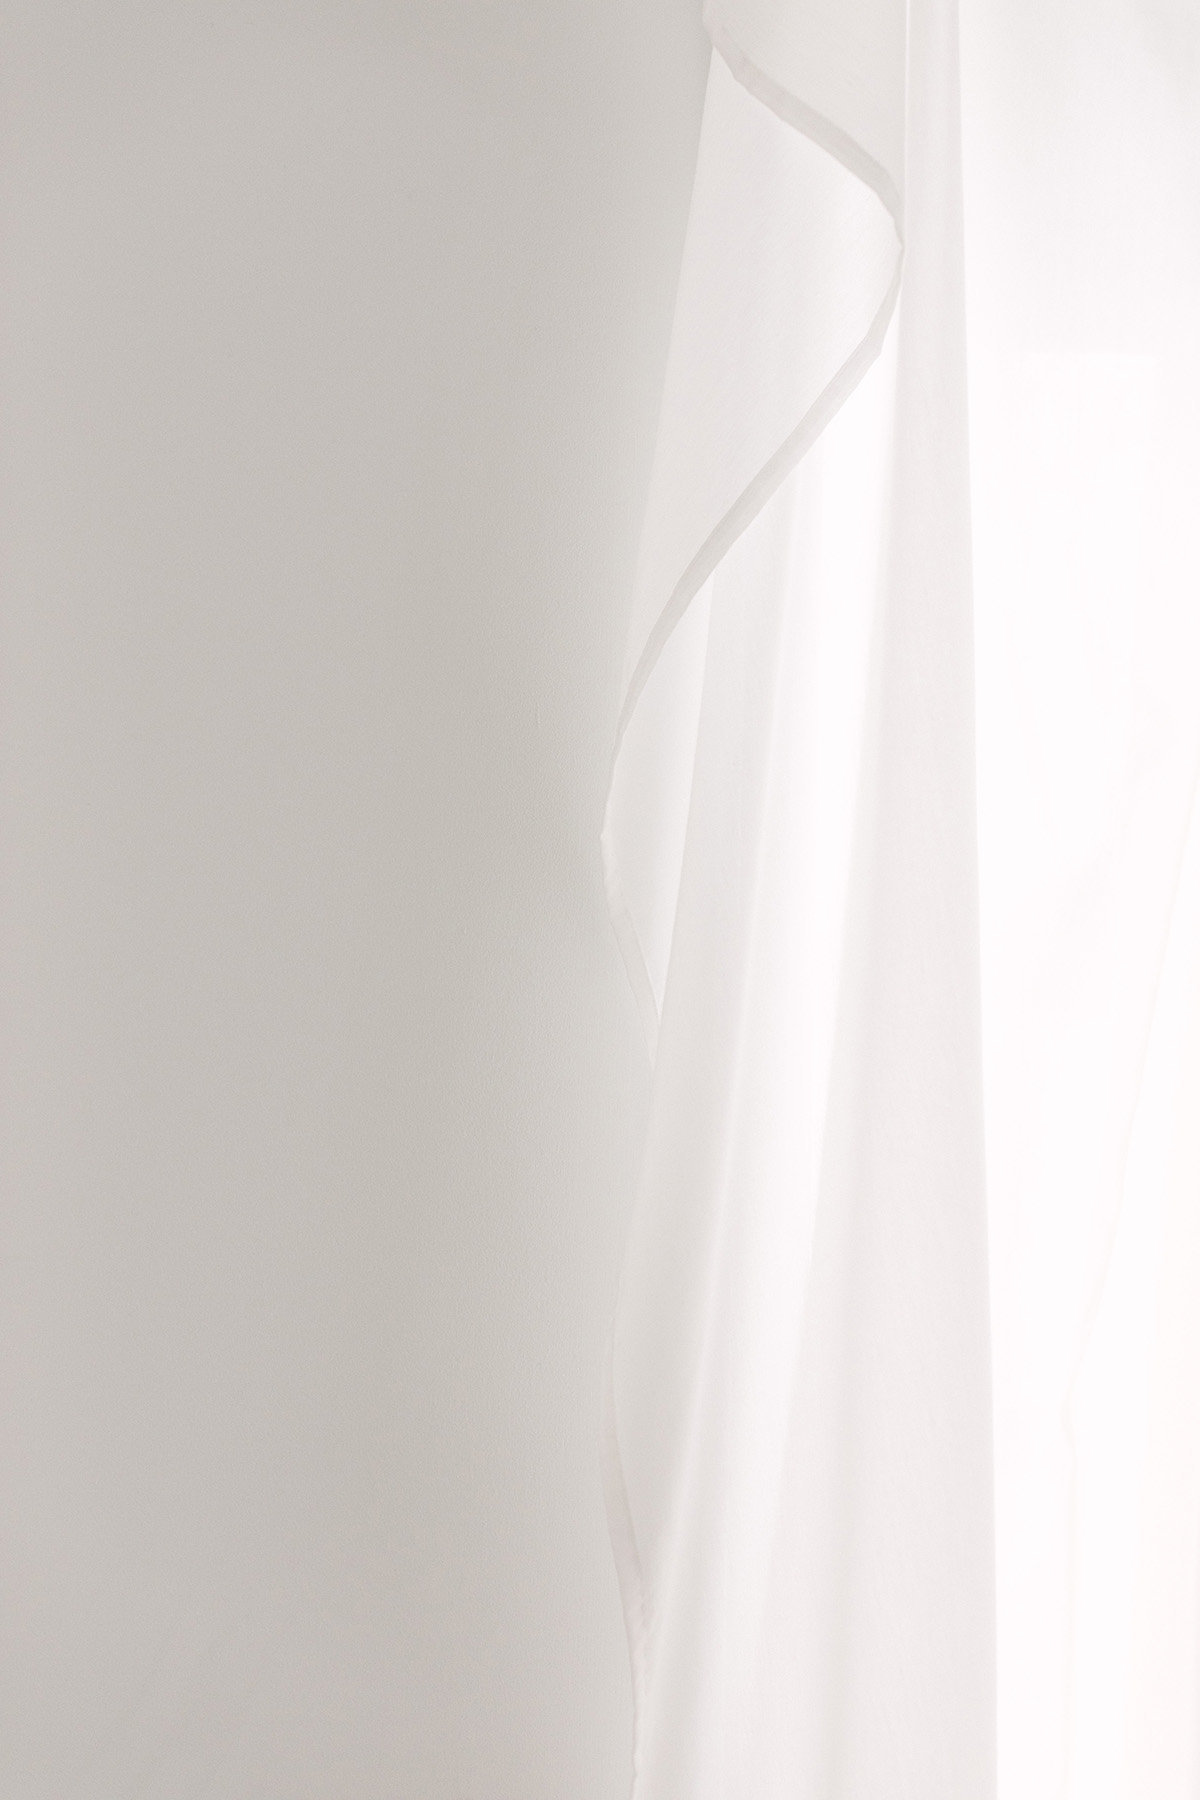 white curtains in a white studio space by Boudoir by Elle